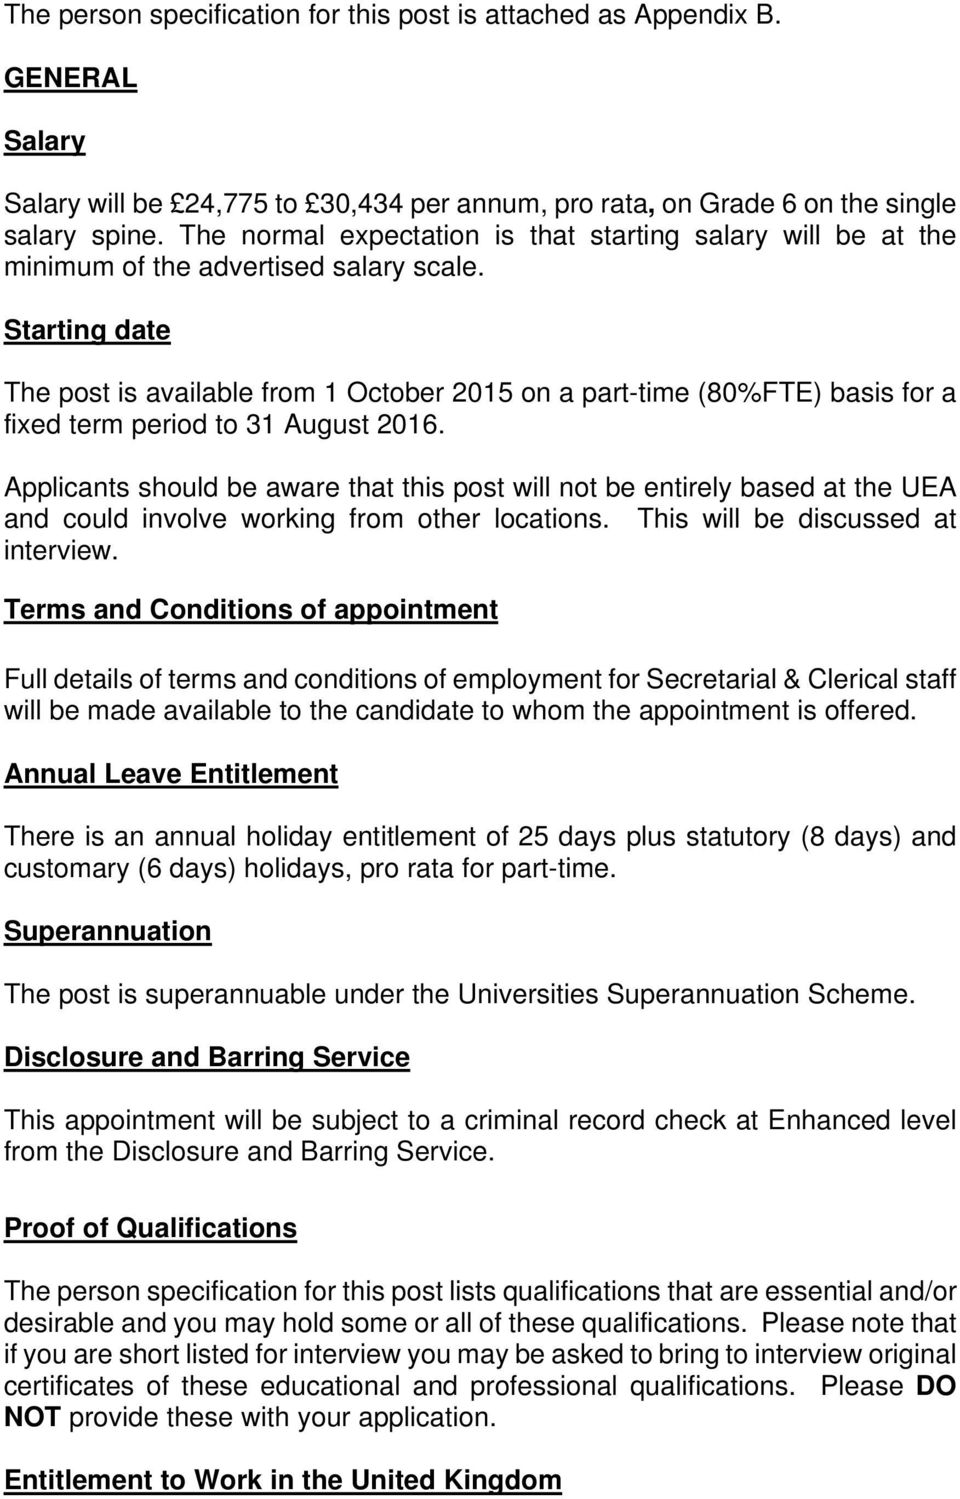 Starting date The post is available from 1 October 2015 on a part-time (80%FTE) basis for a fixed term period to 31 August 2016.